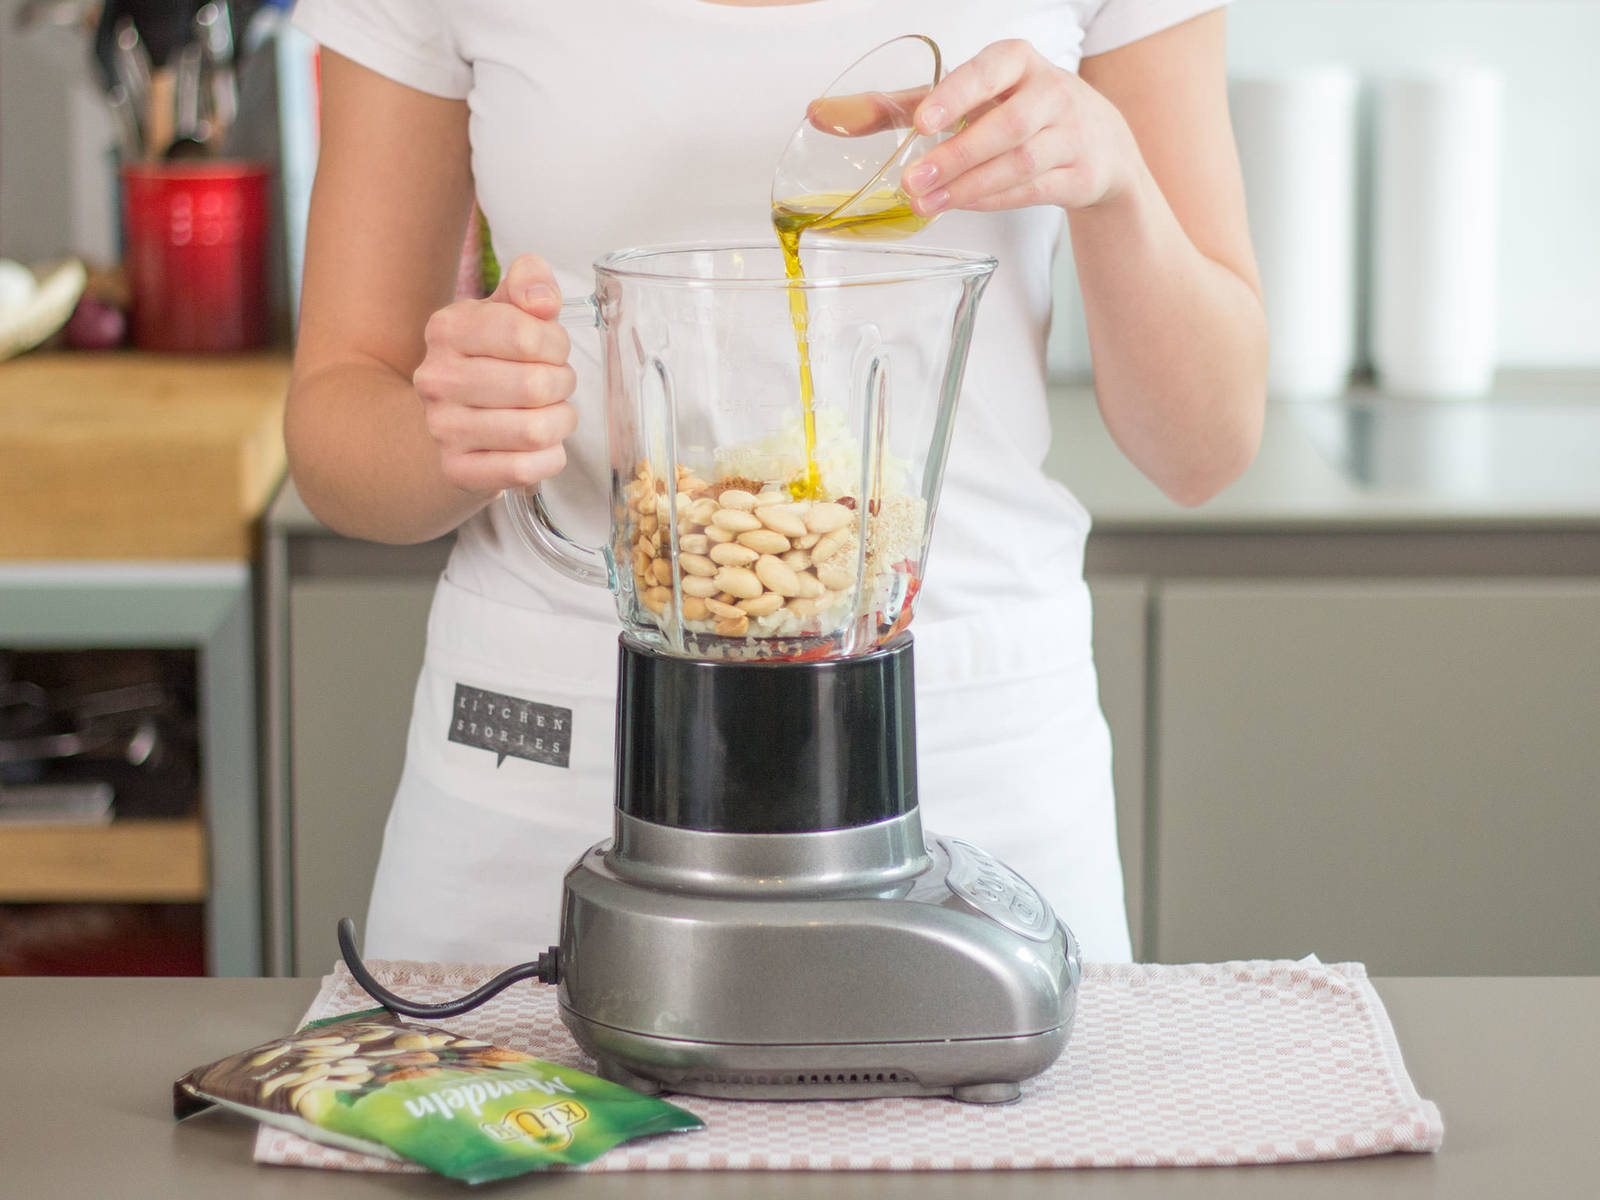 Add onions, tomatoes, chilis, peanuts, almonds, clove, cinnamon, sesame seeds, and olive oil to a blender. Blend for approx. 2 – 3 min. into a smooth pesto.